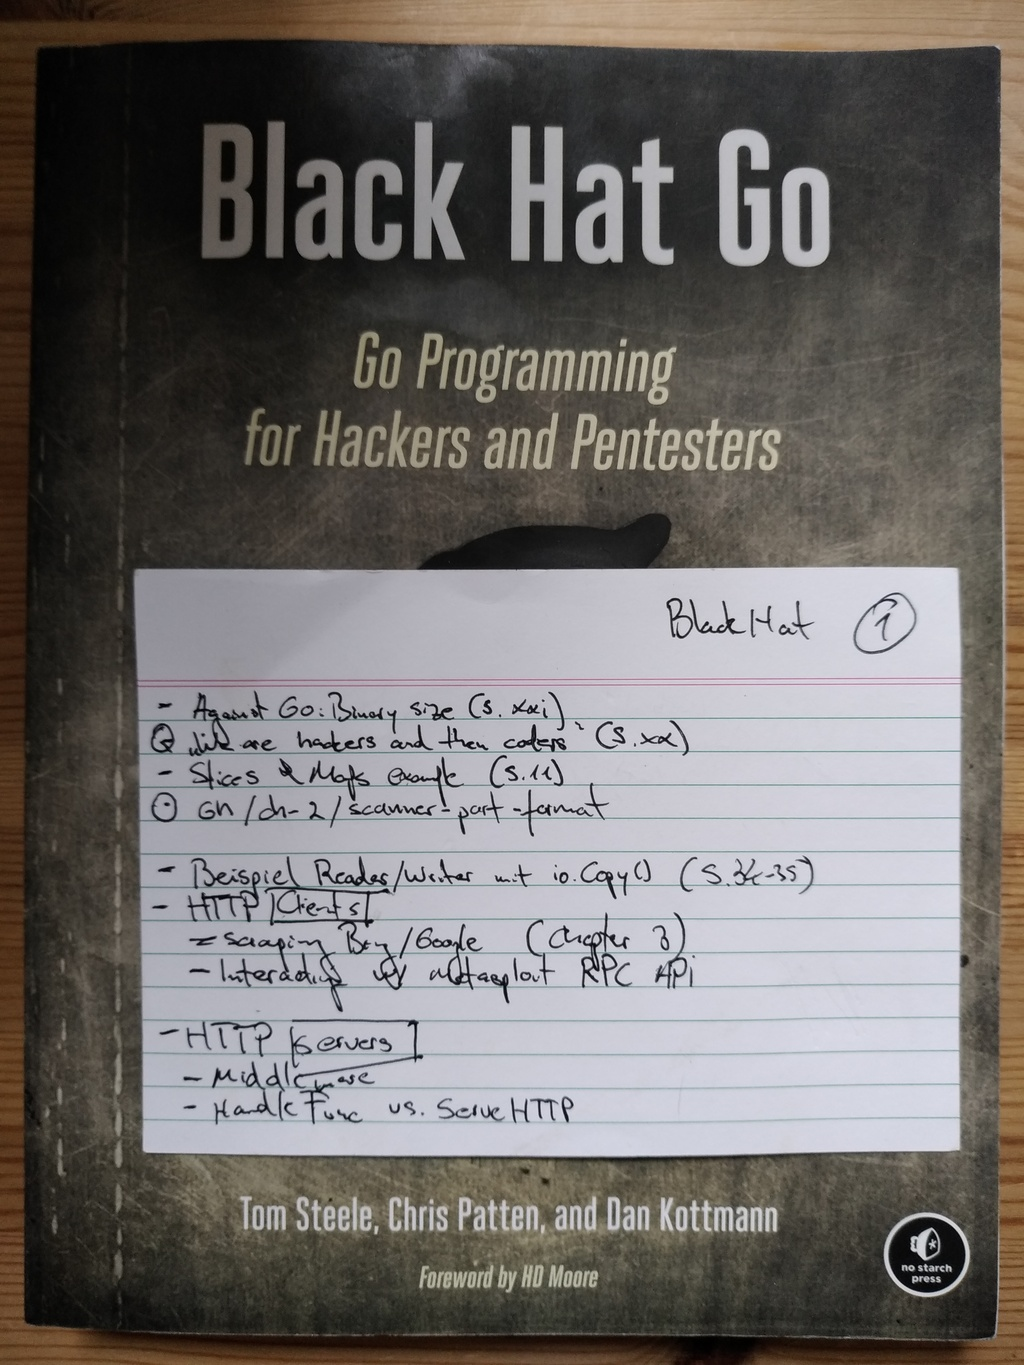 Figure 2: The same also for tech books (notes for the book Black Hat Go)